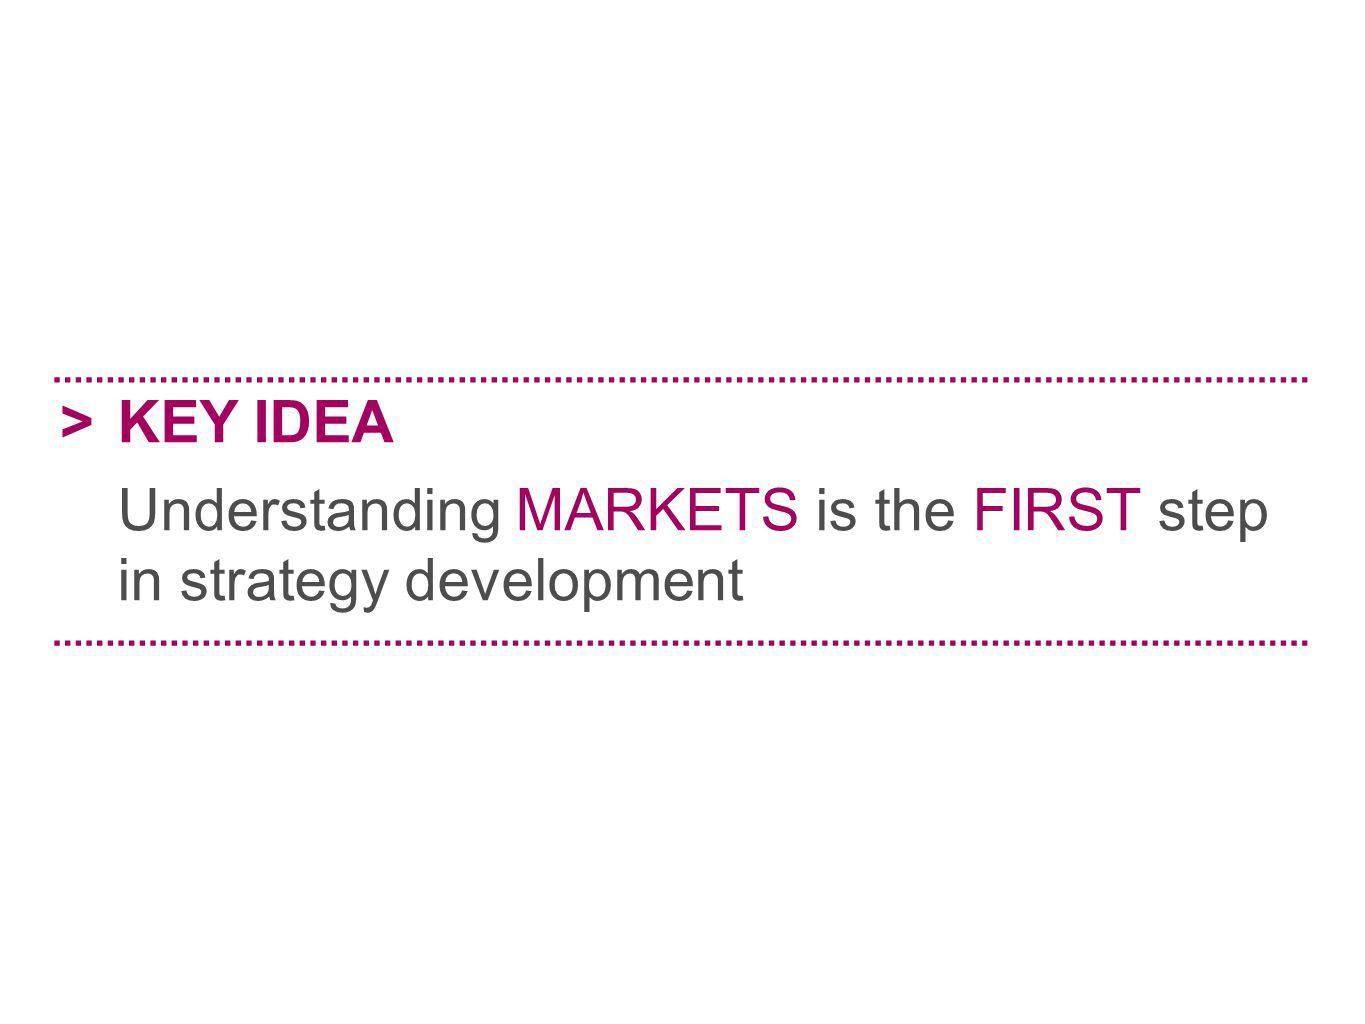 > KEY IDEA Understanding MARKETS is the FIRST step in strategy development